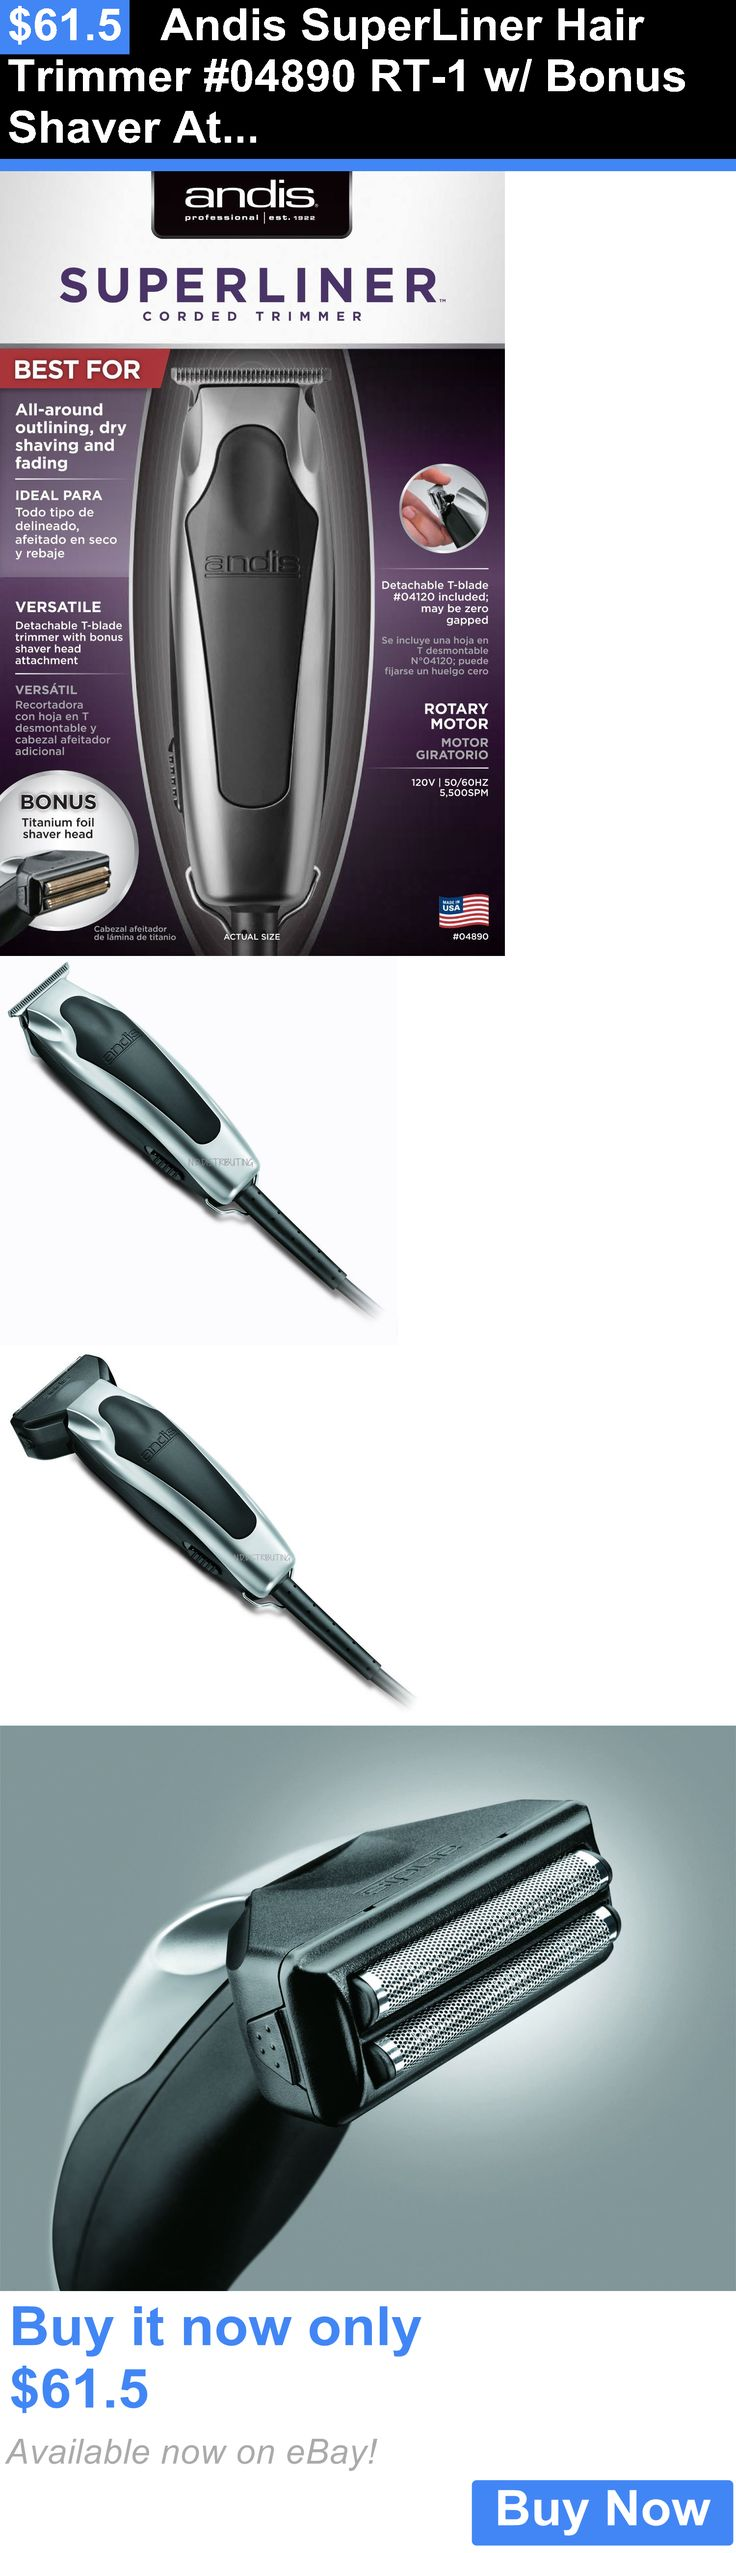 13 best Hair Trimmers images on Pinterest | Electric, Hair care ...